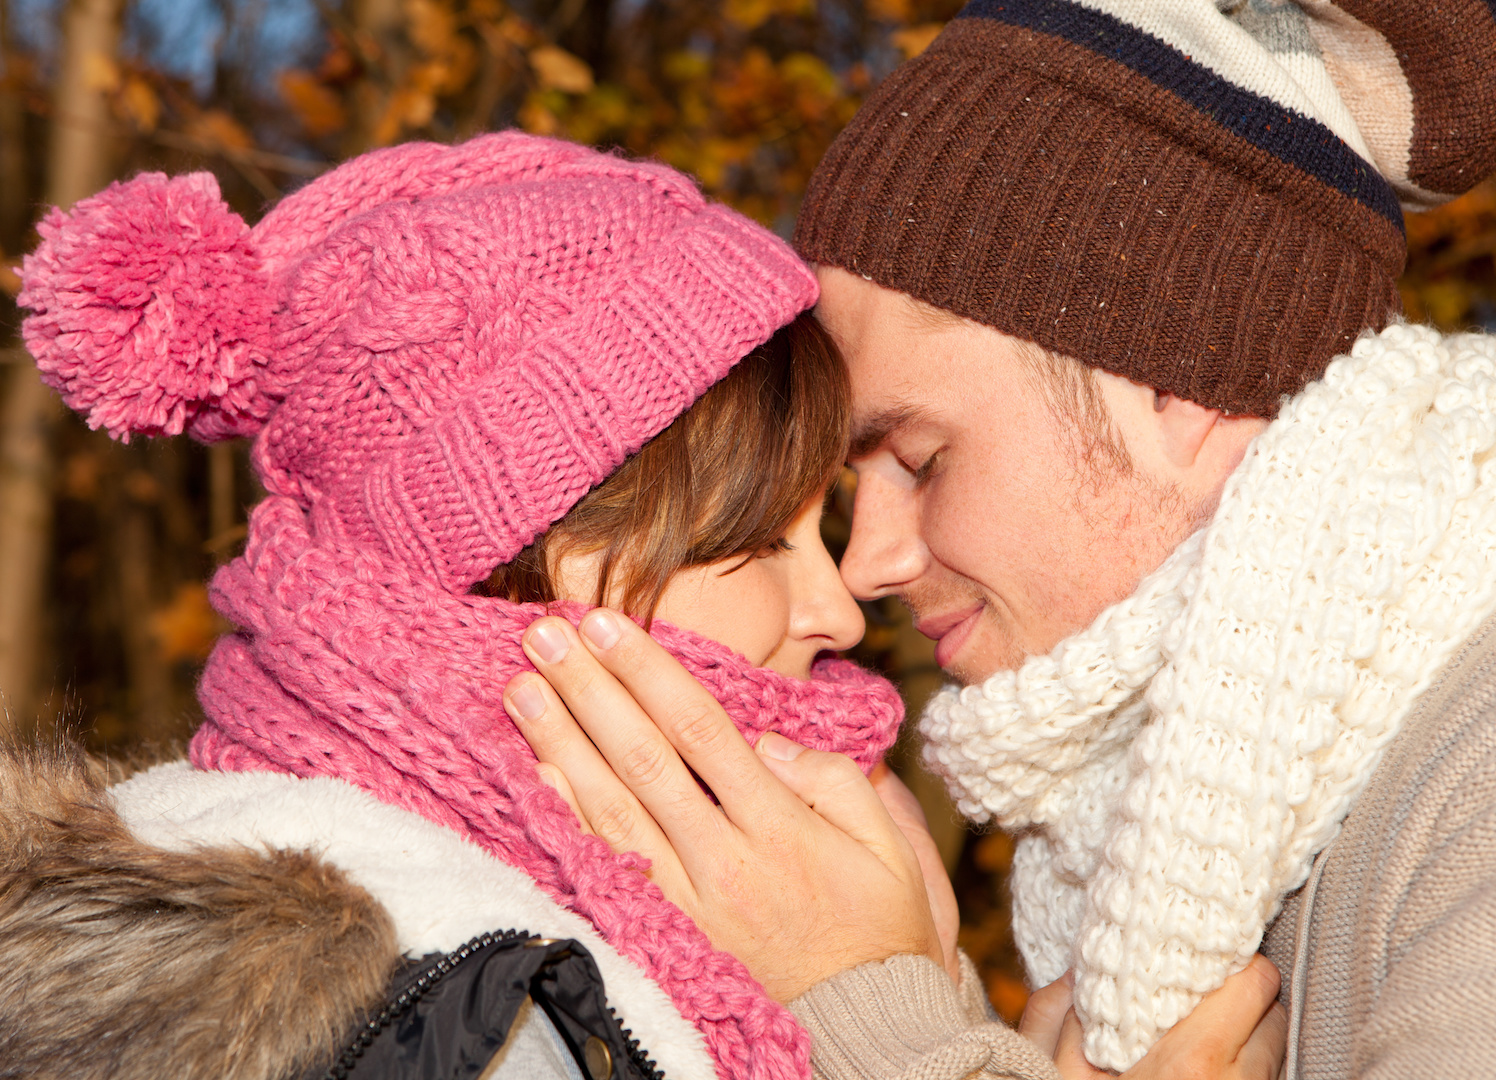 Marital Warmth - AdobeStock_40993469 copy